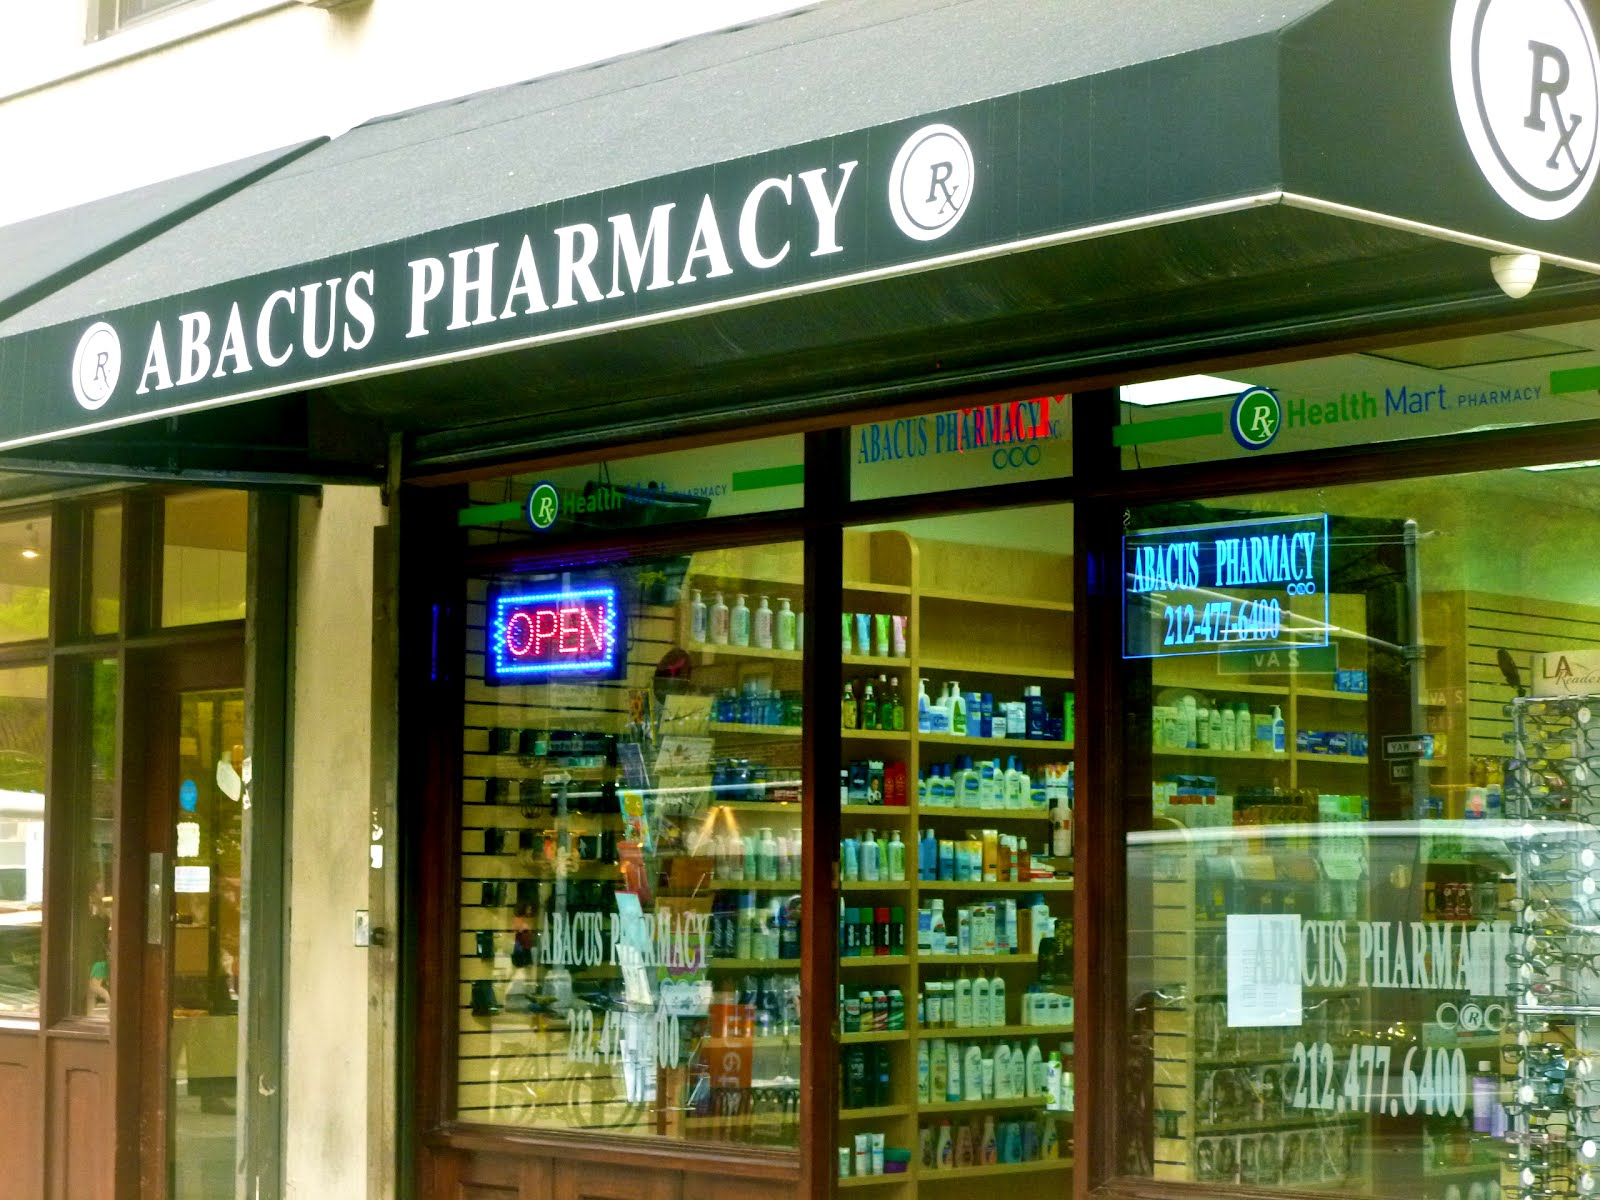 Can i get into a pharmacy program in NYC?